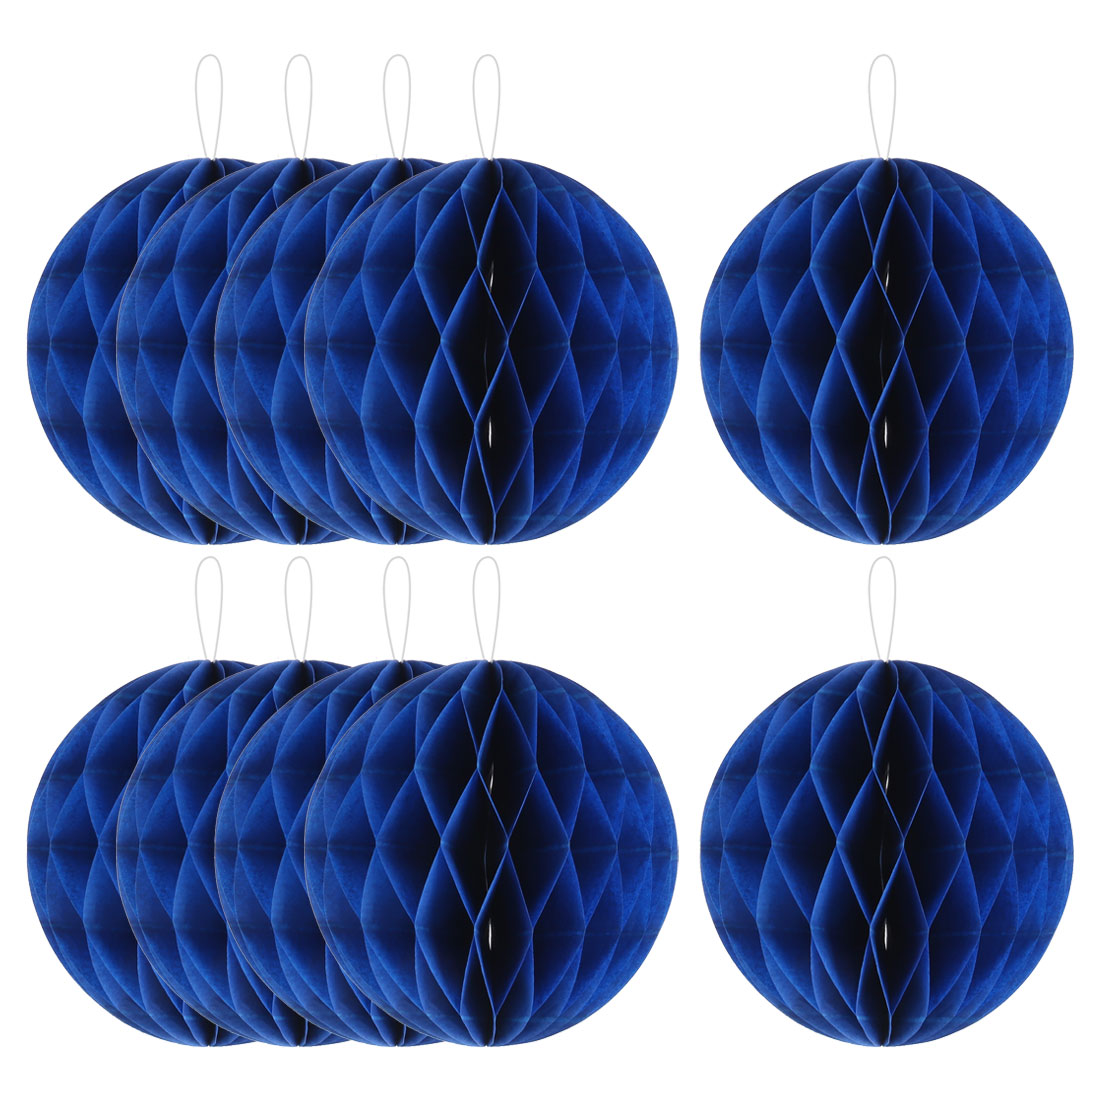 Household Party Paper Wall Window Door DIY Decoration Honeycomb Ball Royal Blue 4 Inch Dia 10 Pcs